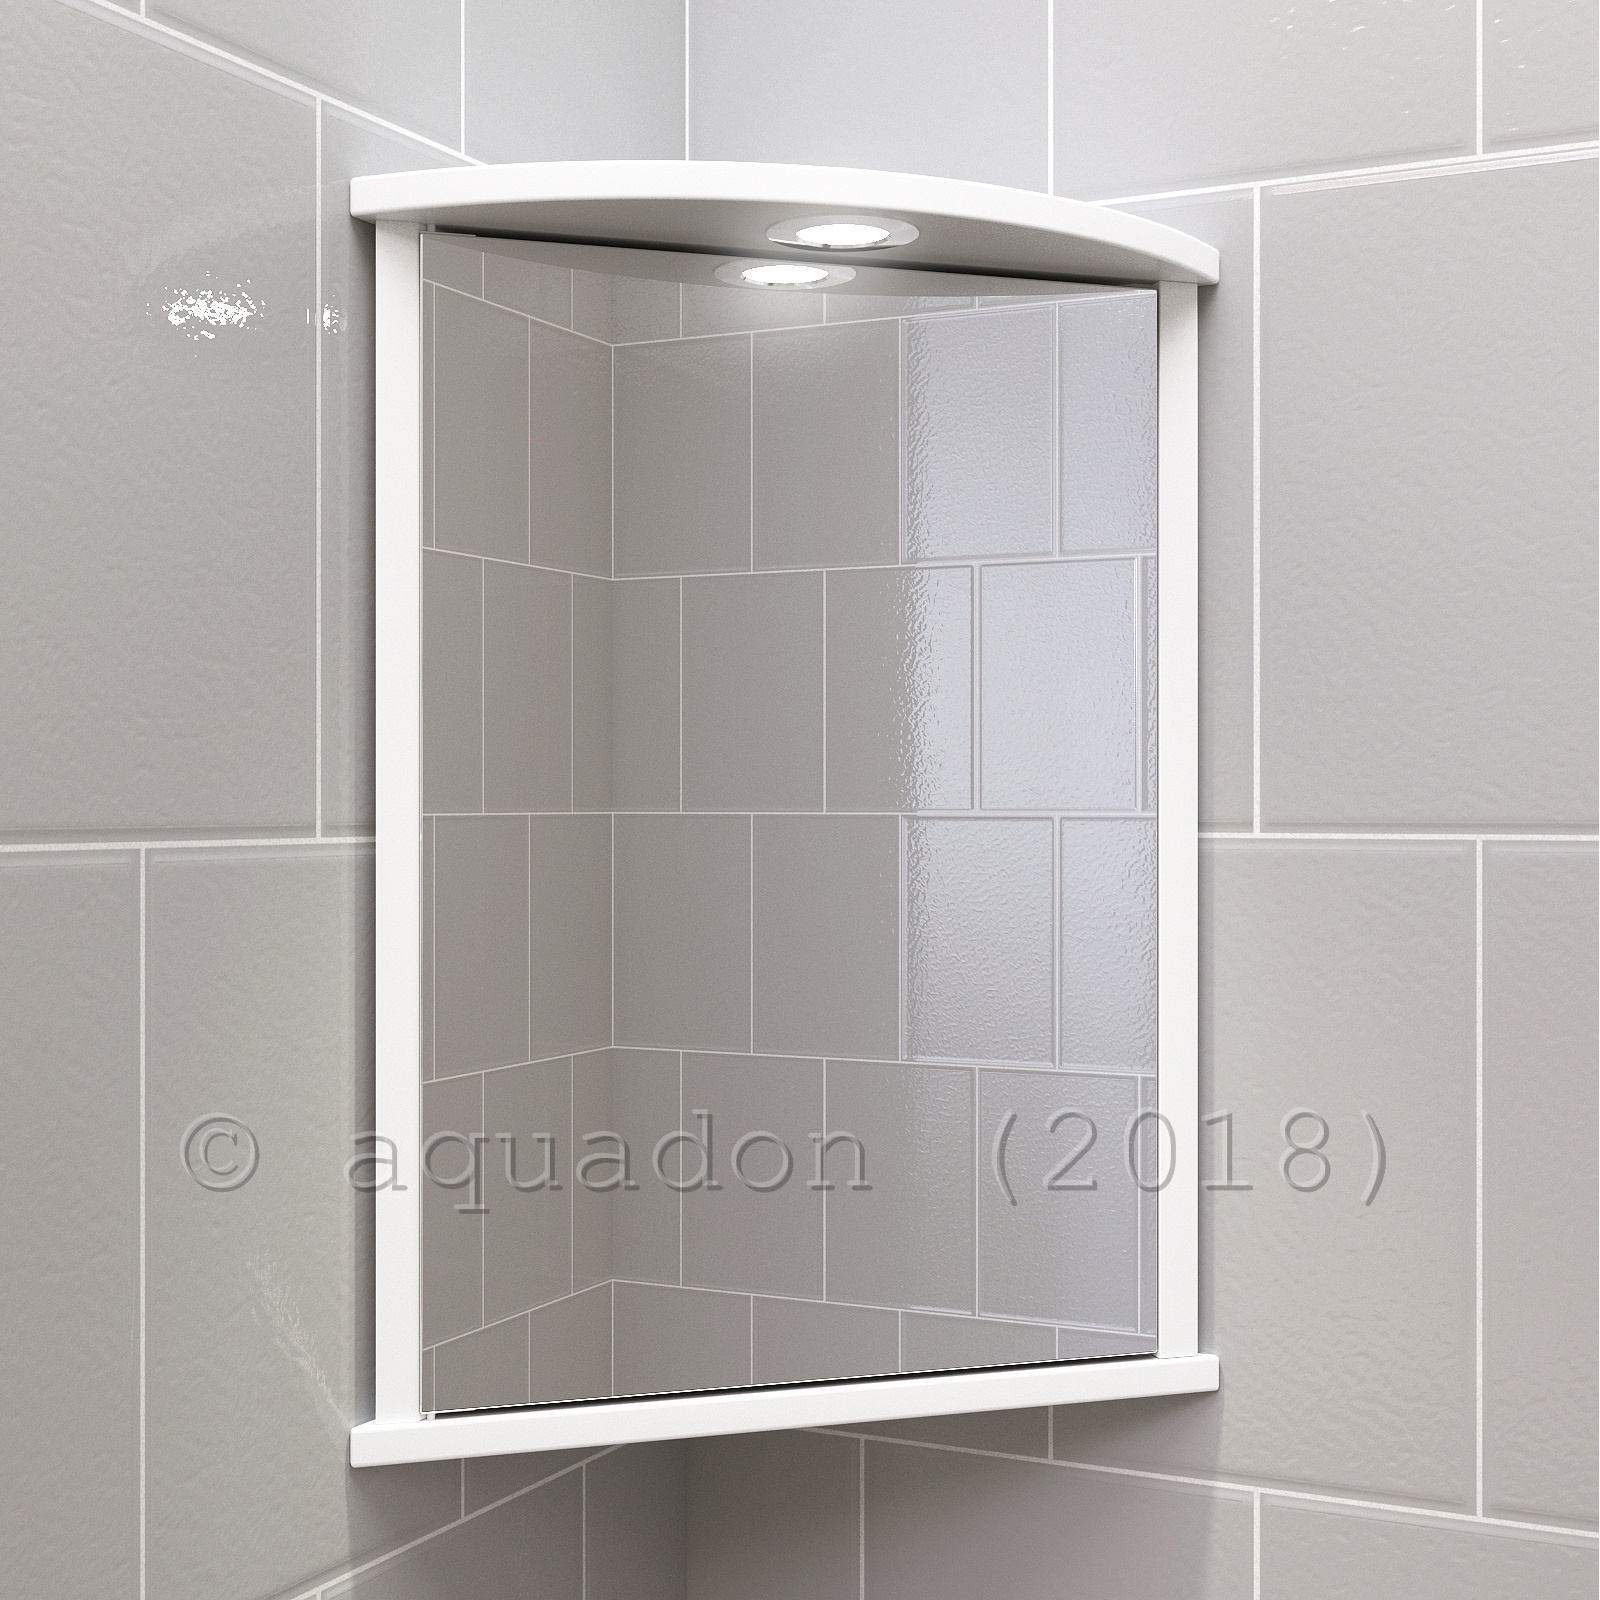 Bathroom Wall Corner Mirror Cabinet White Single Door